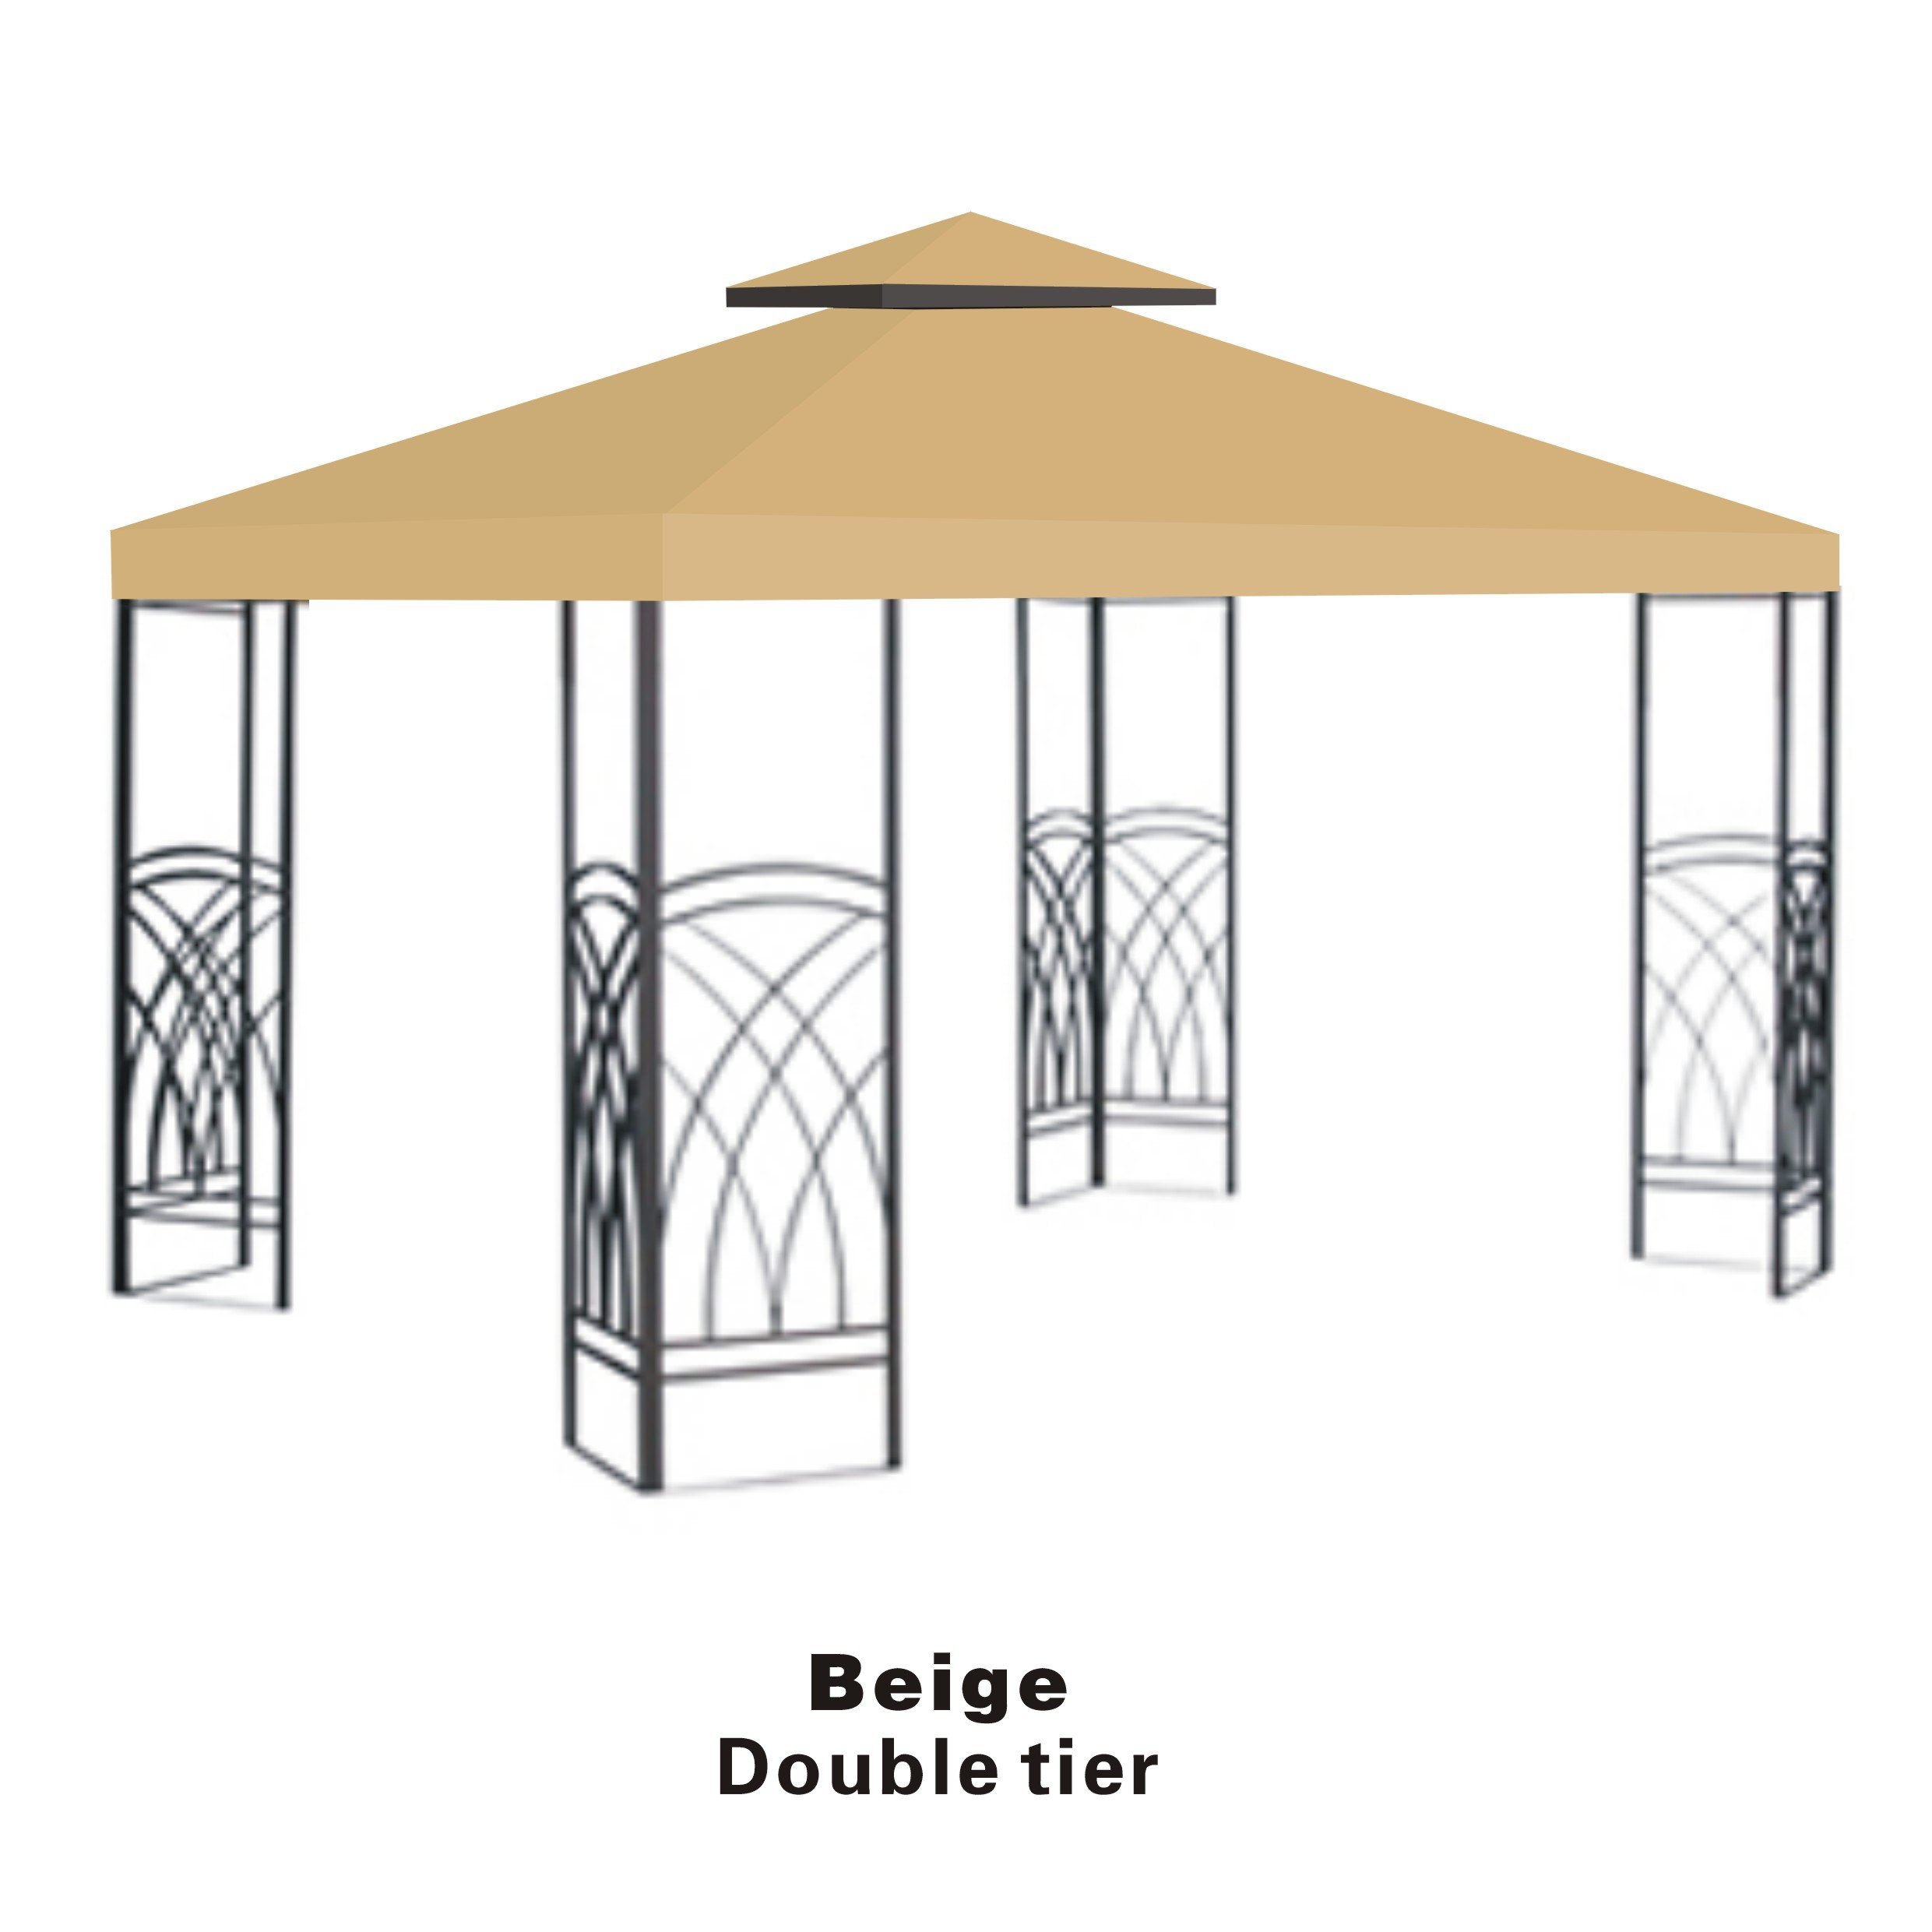 Replacement 10'X10'Gazebo Canopy top Patio Pavilion Cover Sunshade plyester Double Tiers-Beige by Benefit-USA